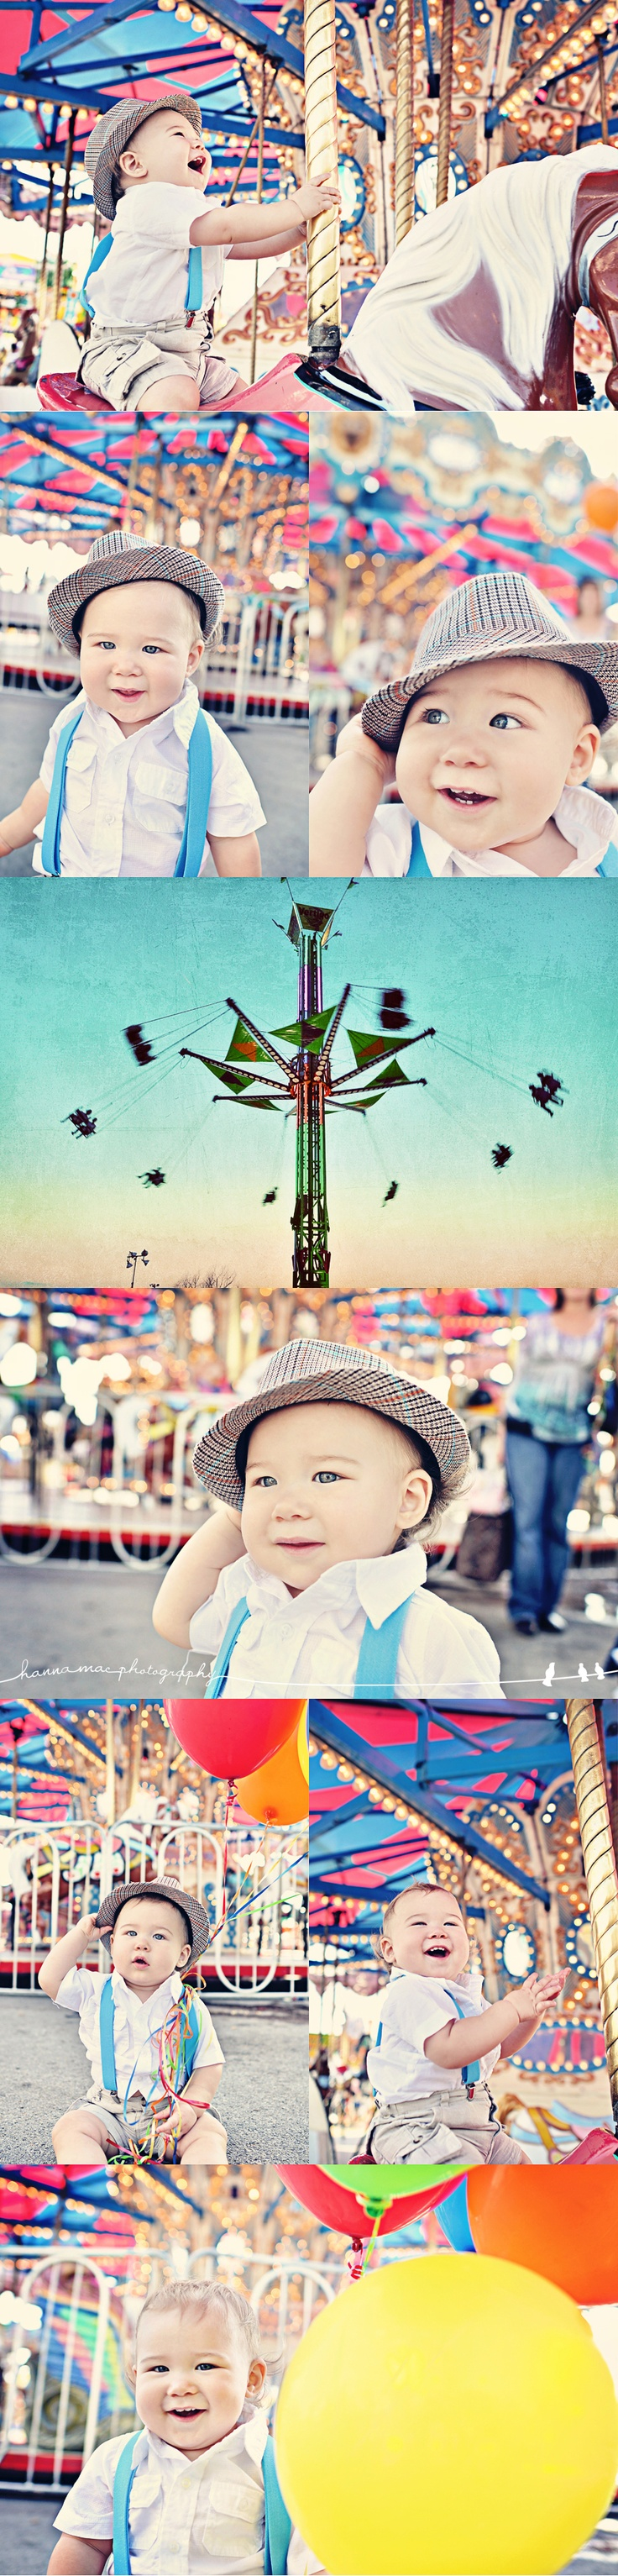 Super colorful, cute, and fun baby photo amazing session idea at the carnival. {Family / Child / Baby Photography}